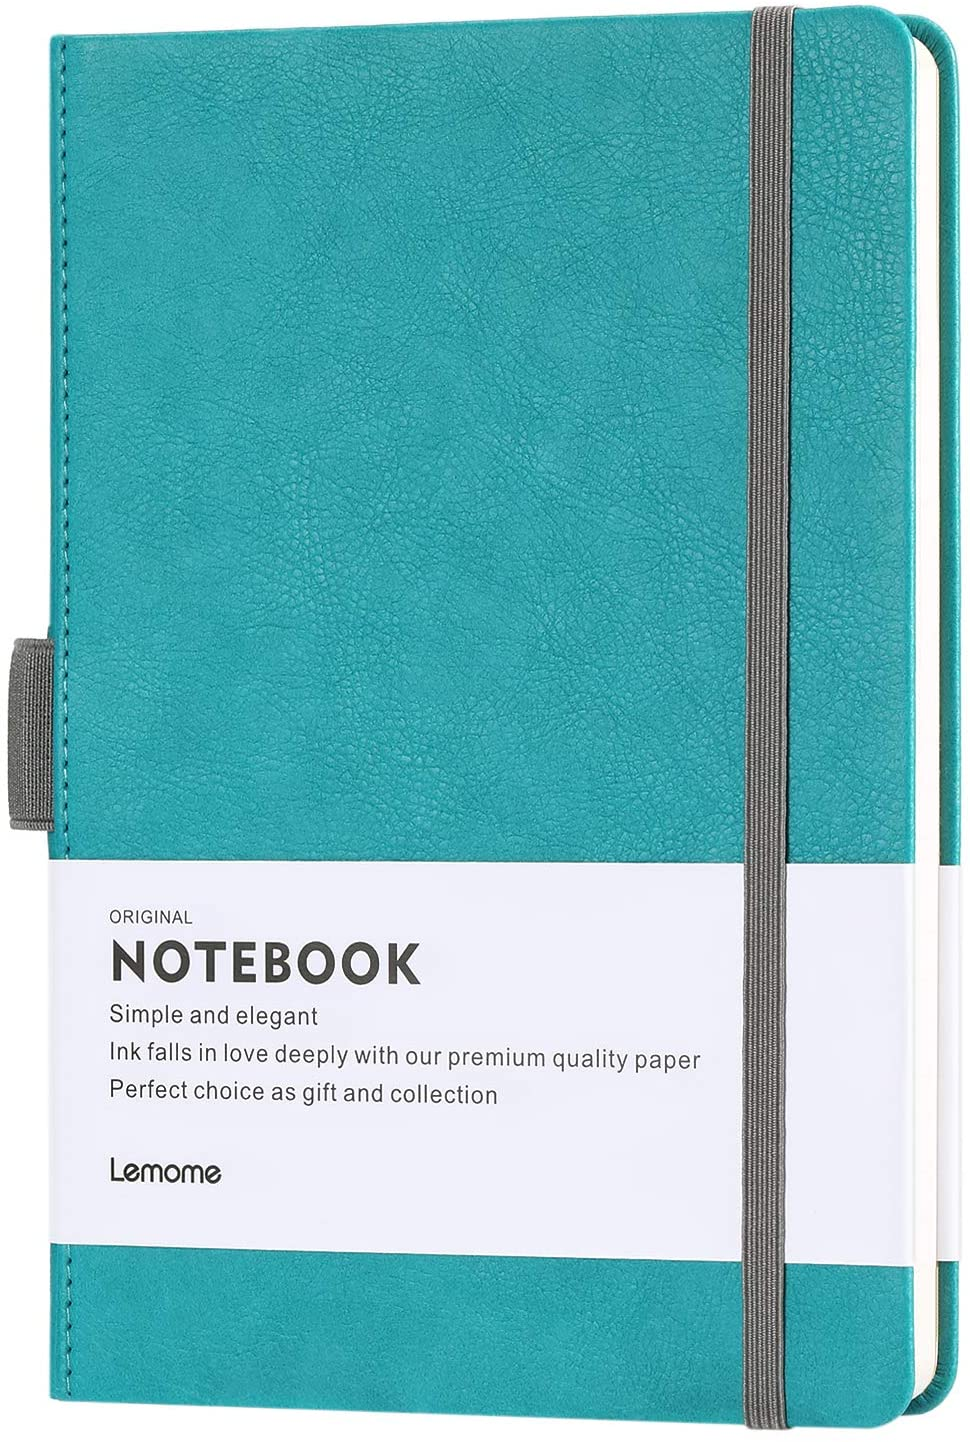 Turquoise classic writing notebook.